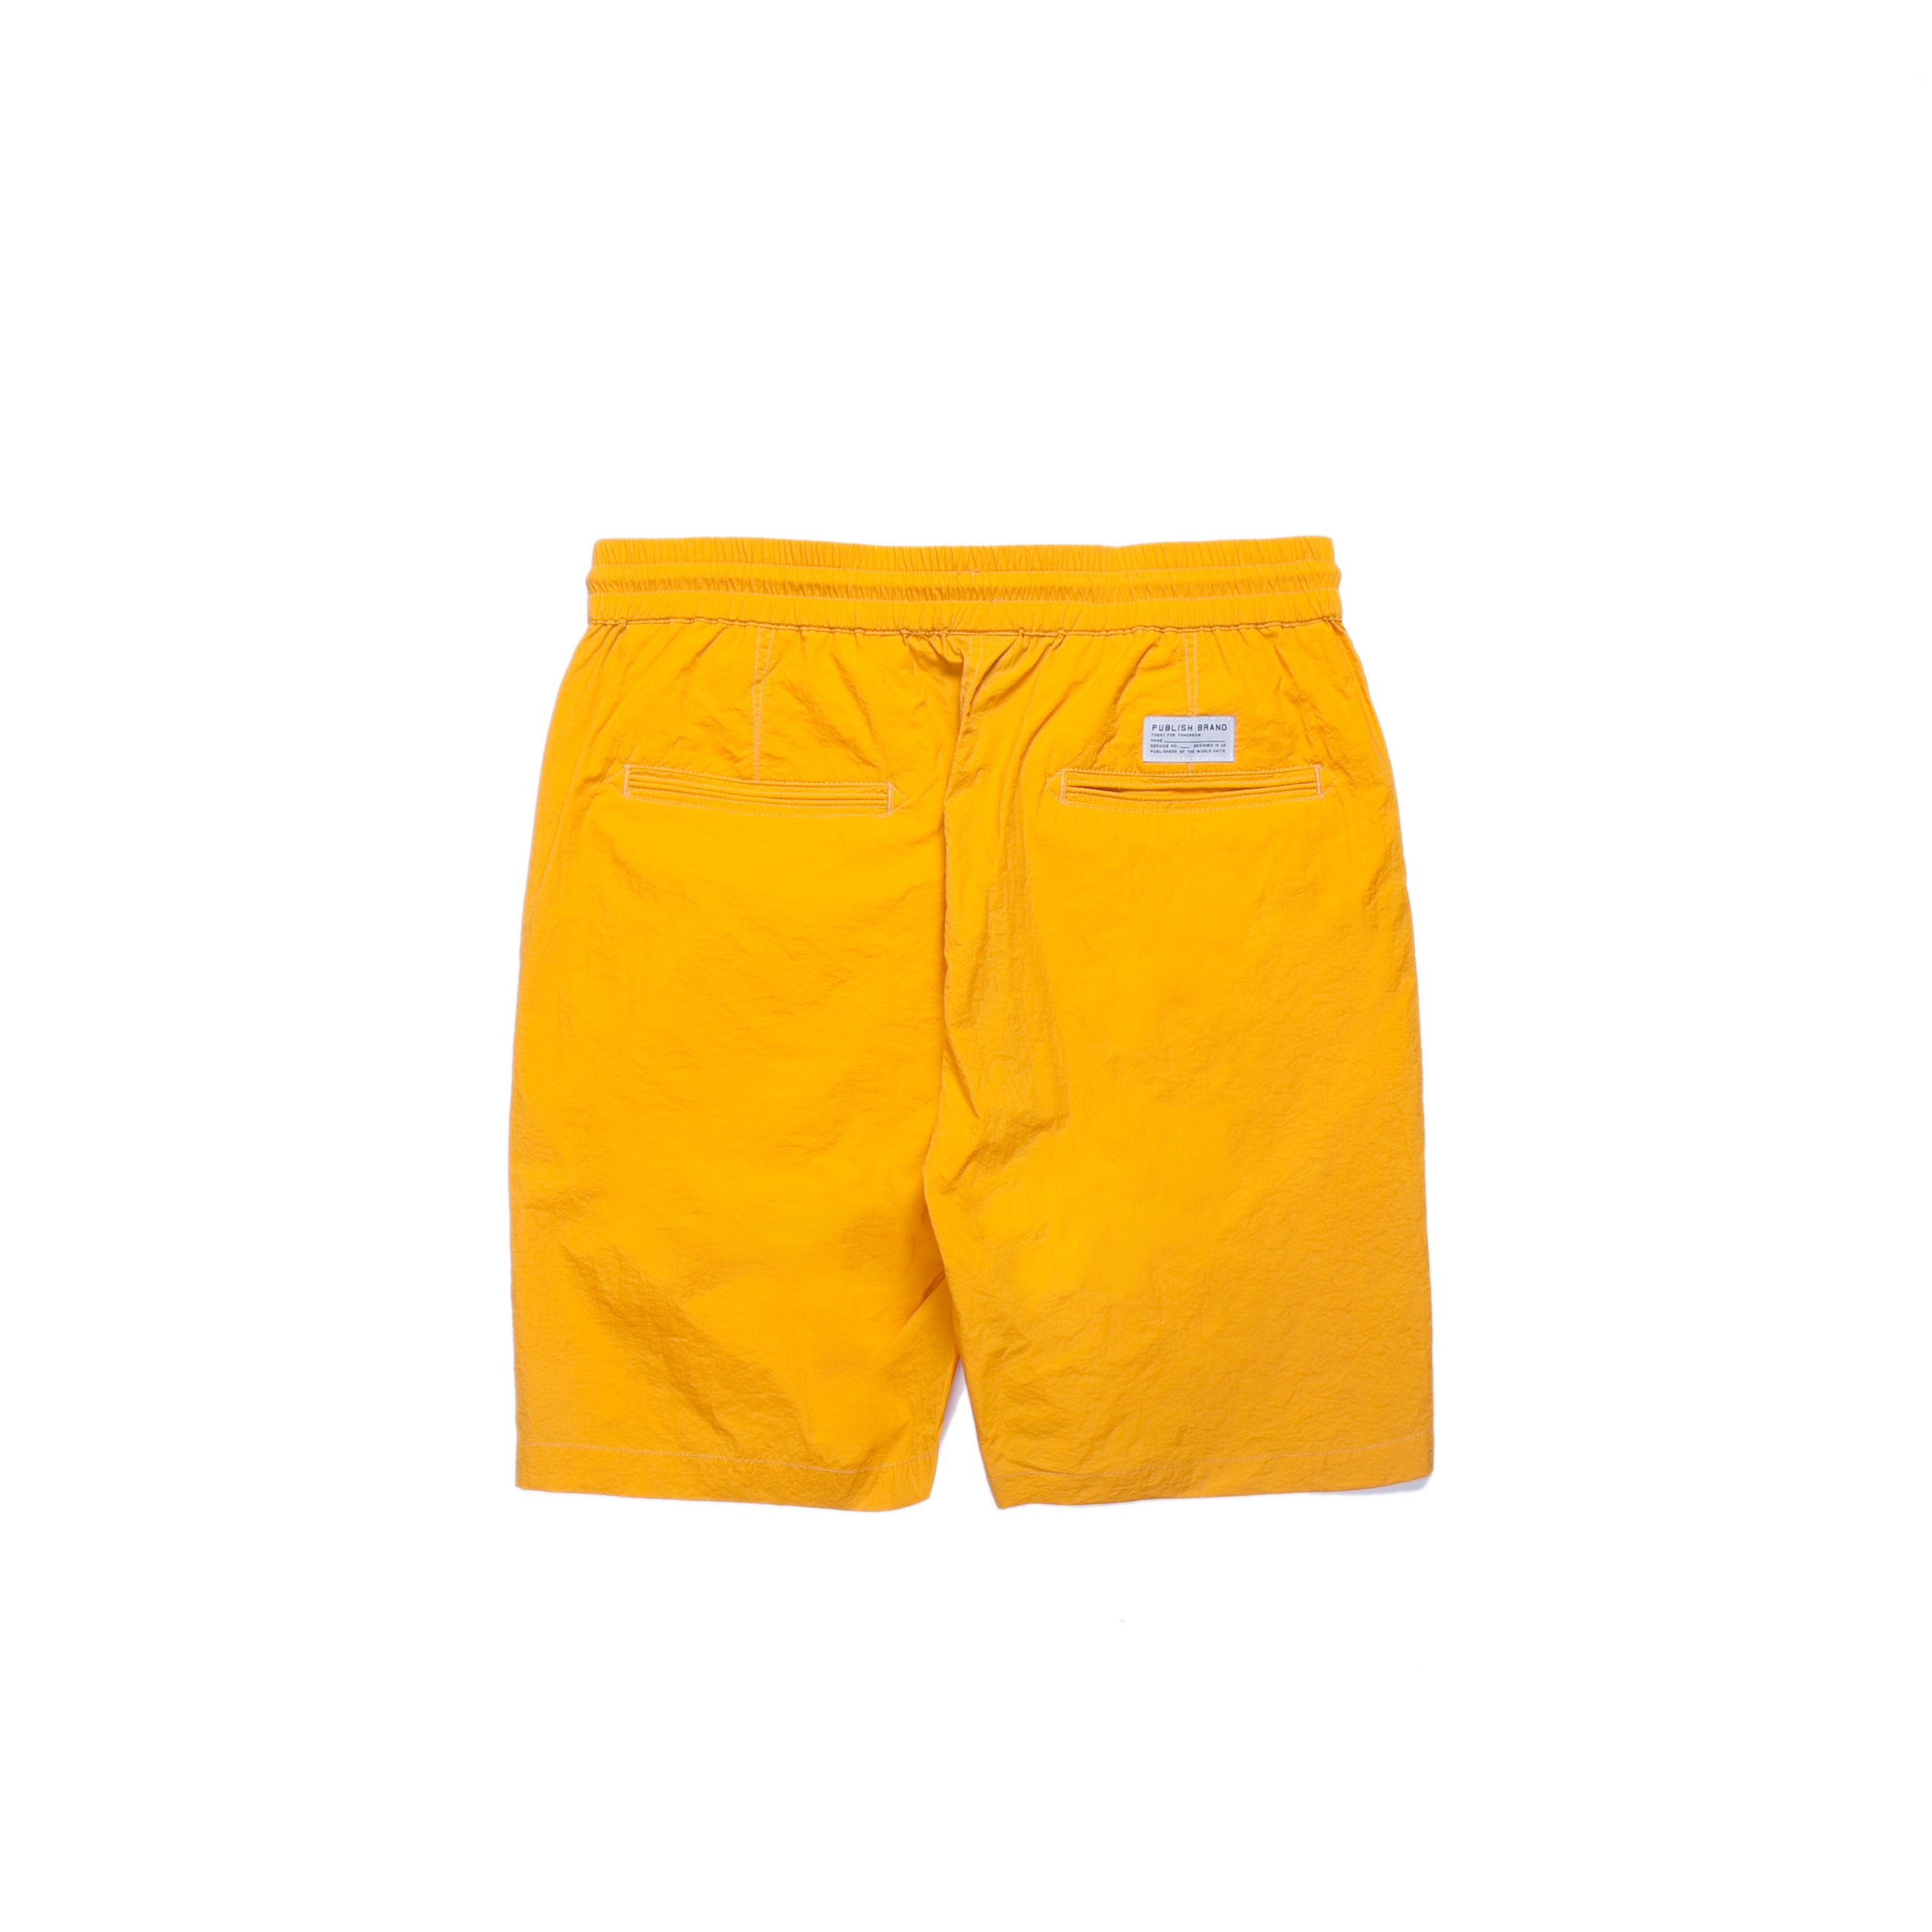 Nylon Sprinter Short - Gold